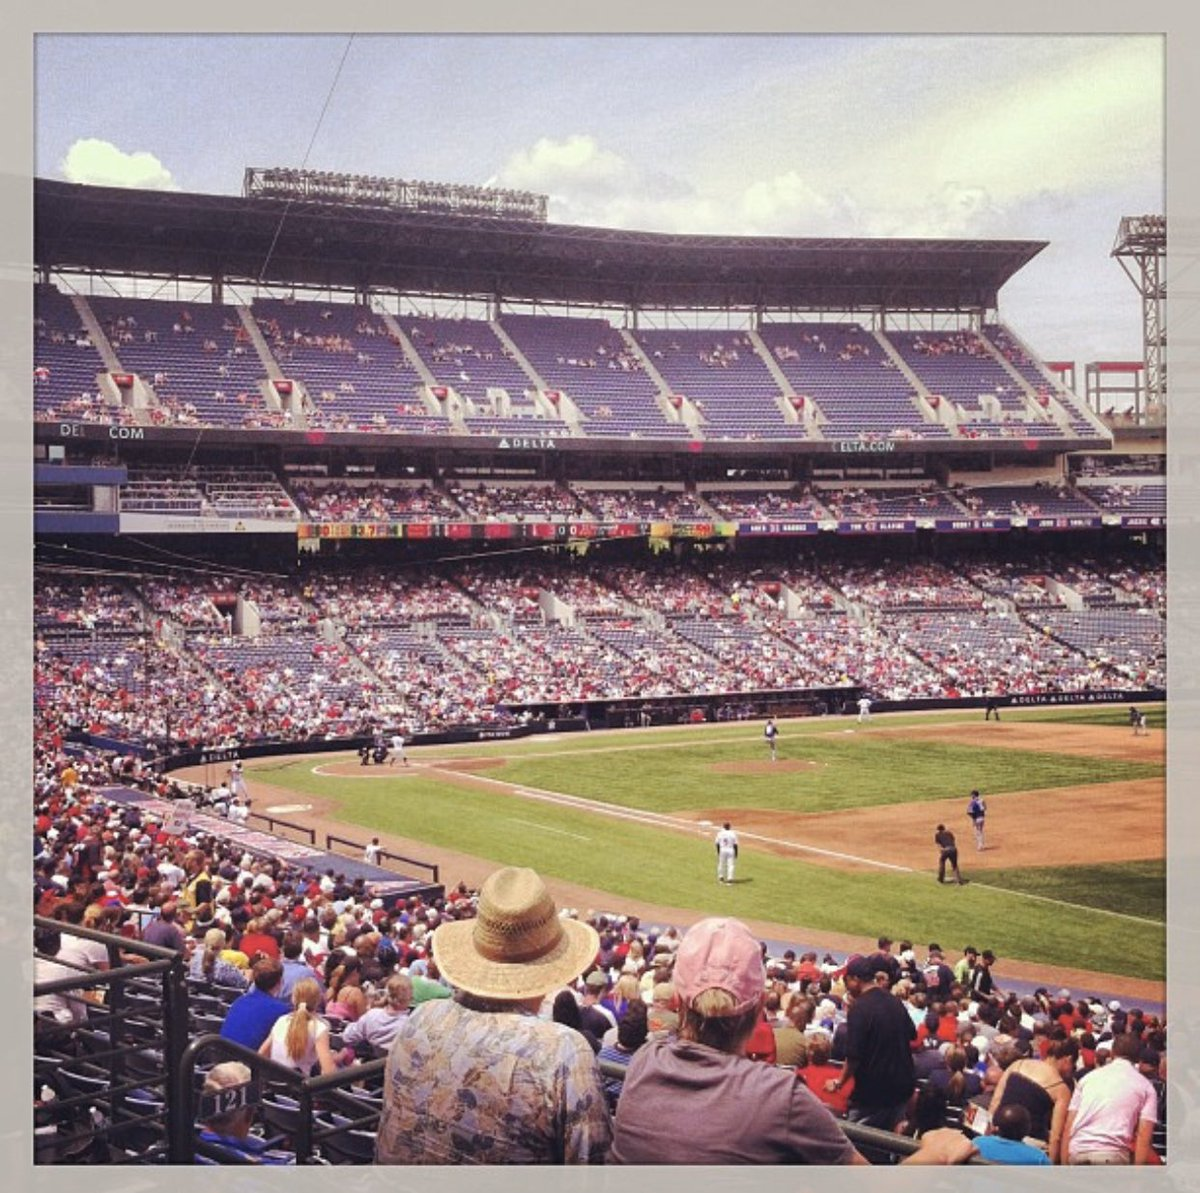 Found some old Turner Field photos the other day. Made so many great memories there. @Braves #ChopOn pic.twitter.com/d0JGXUW7Tj